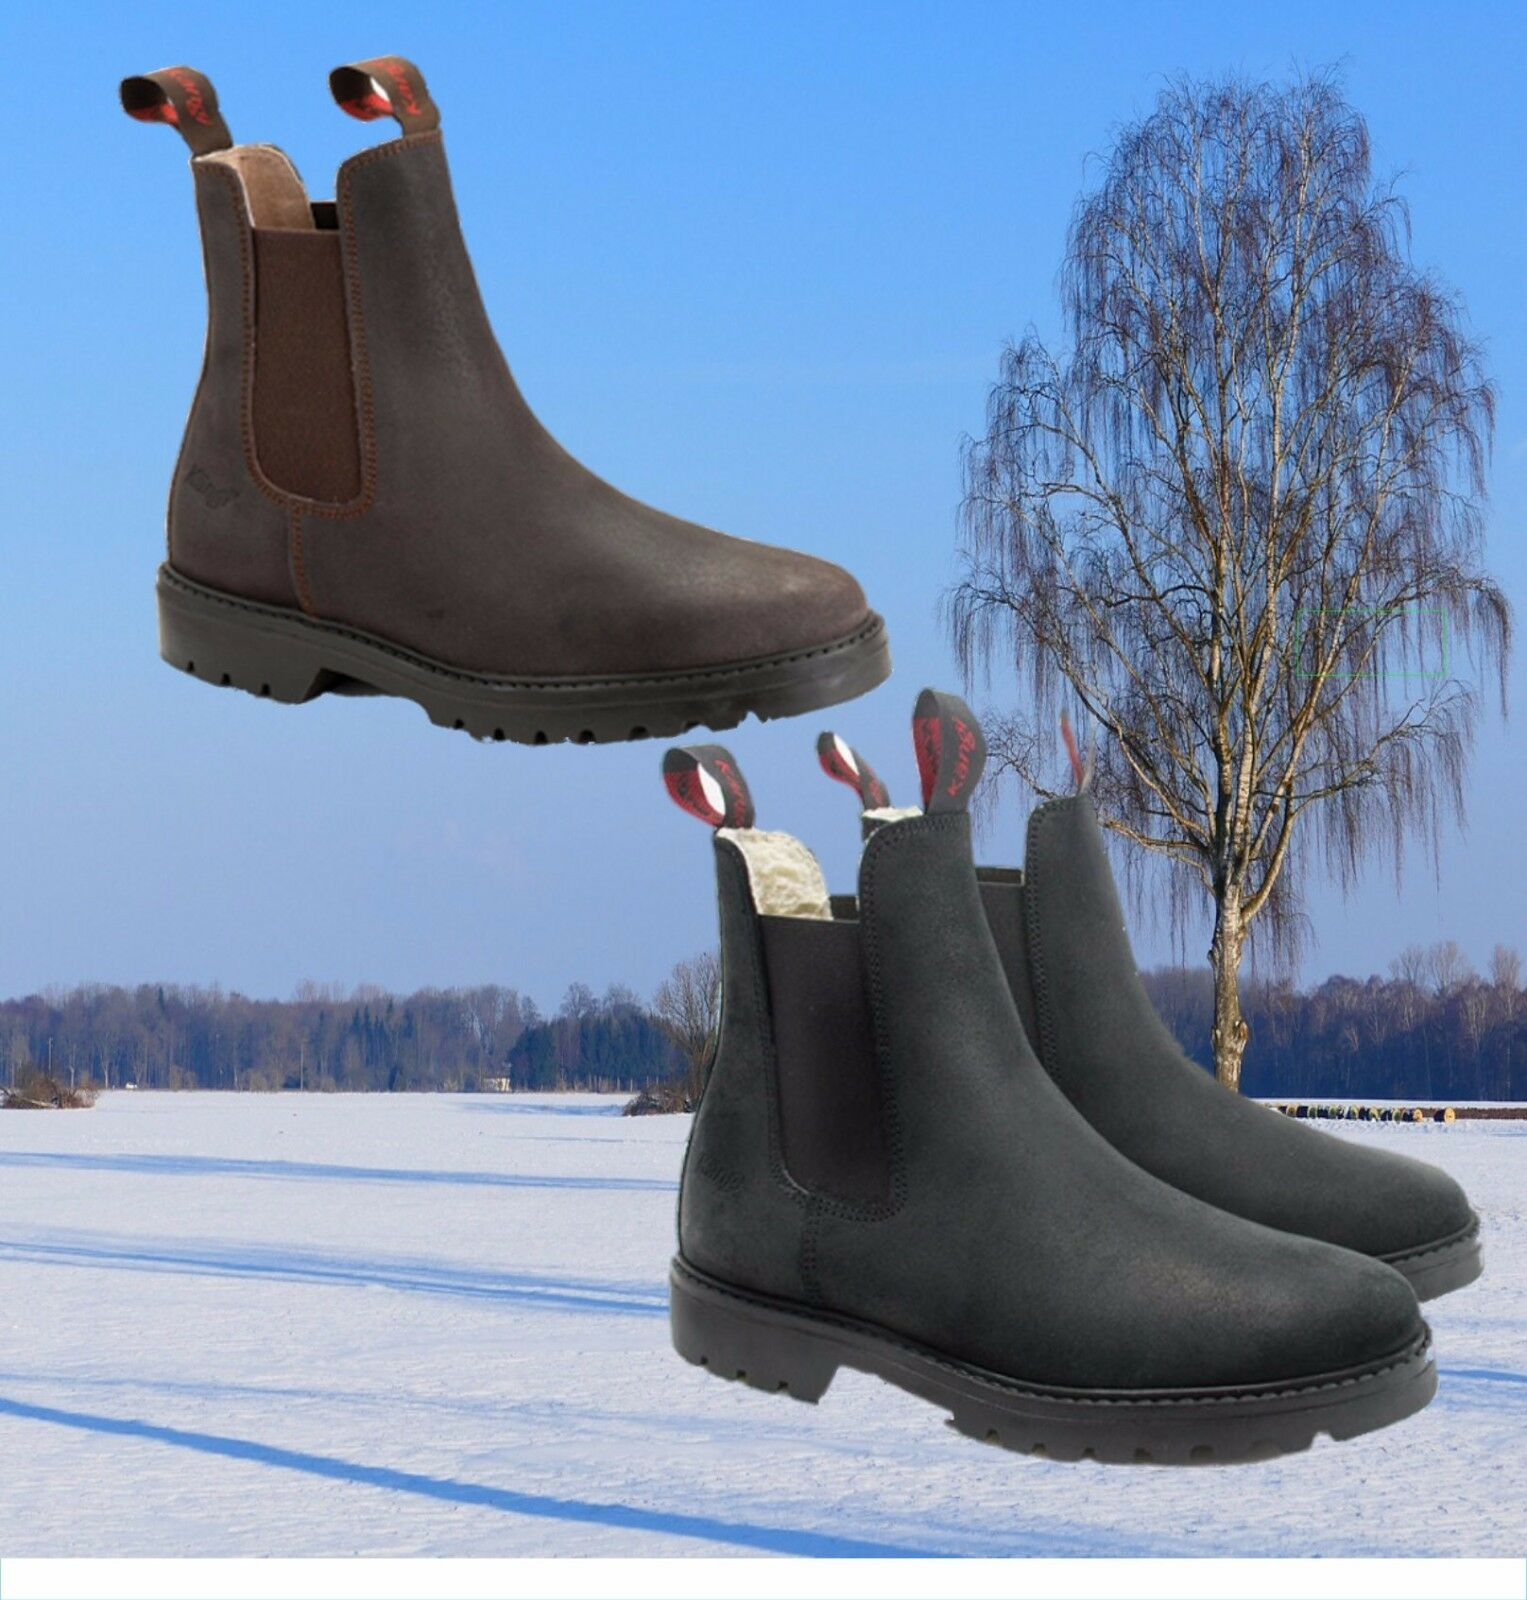 HOBO Kängi on Ice Thermo Stiefelette, Hobo Winter Leder Stiefelette, Webpelz